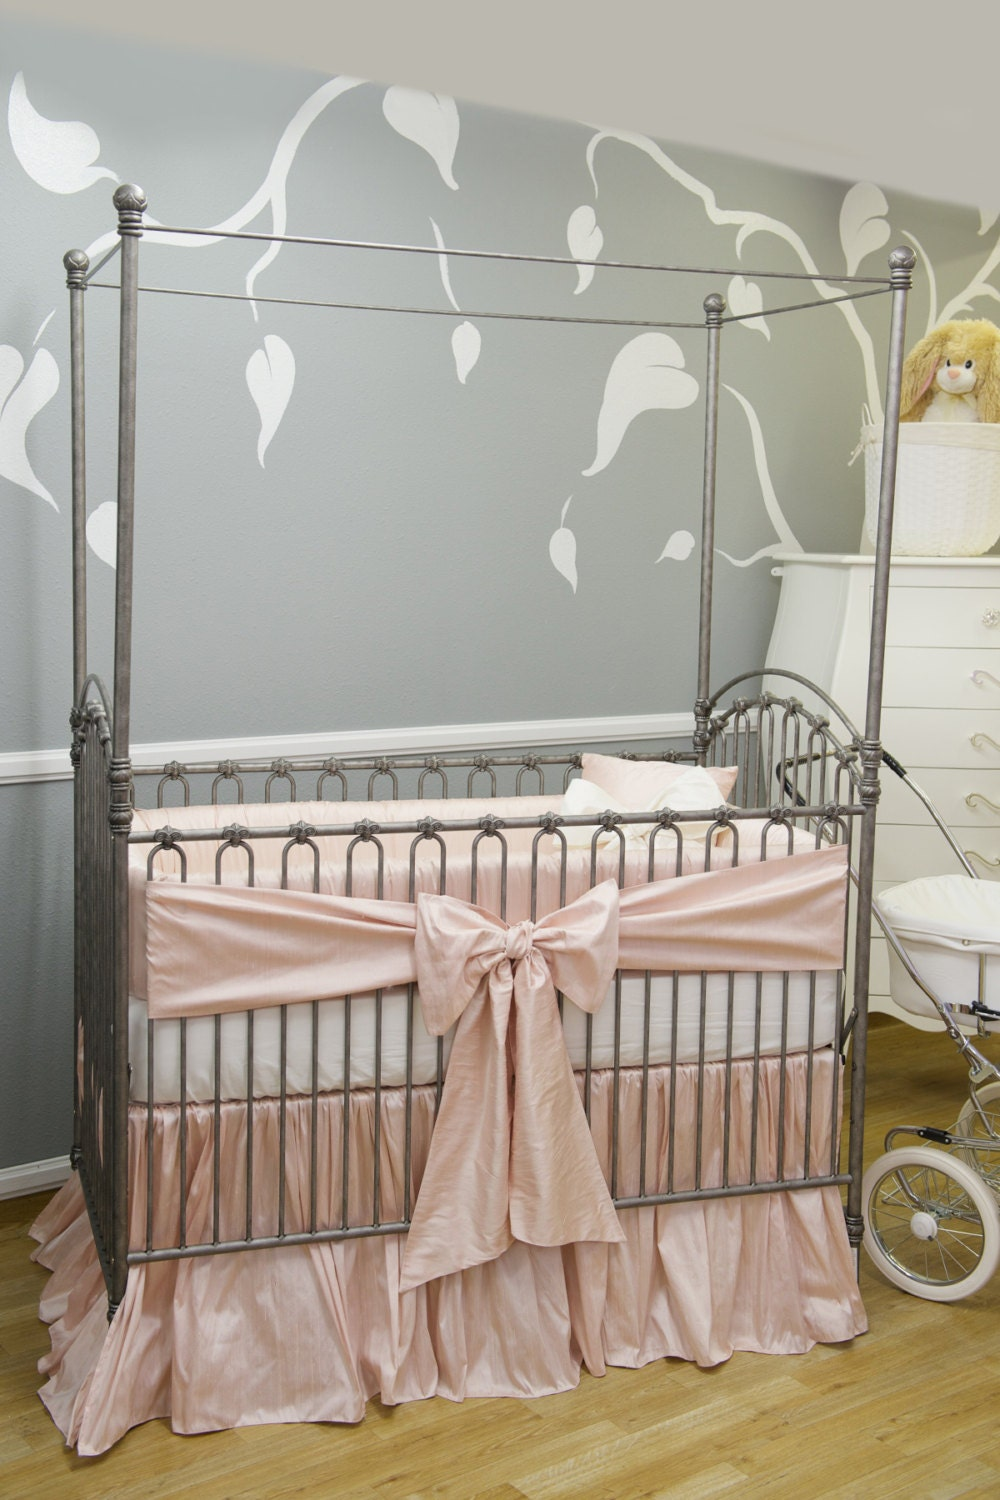 THE STORK COLLECTION: Silk Crib Bedding Crib Bedding